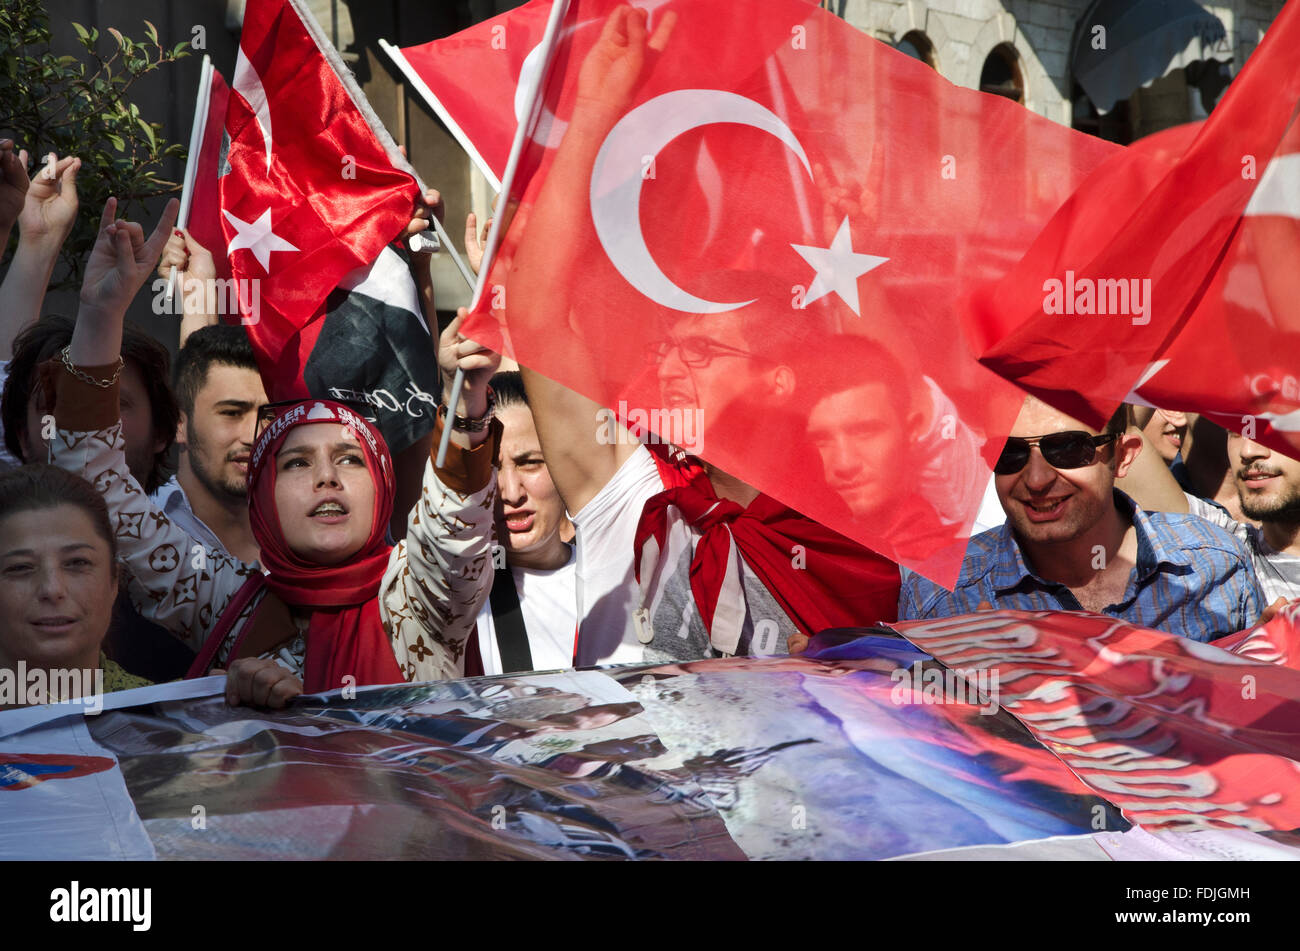 Ultra nationalist turks in istanbul protesting pkk in istanbul holding turkish flag - Stock Image